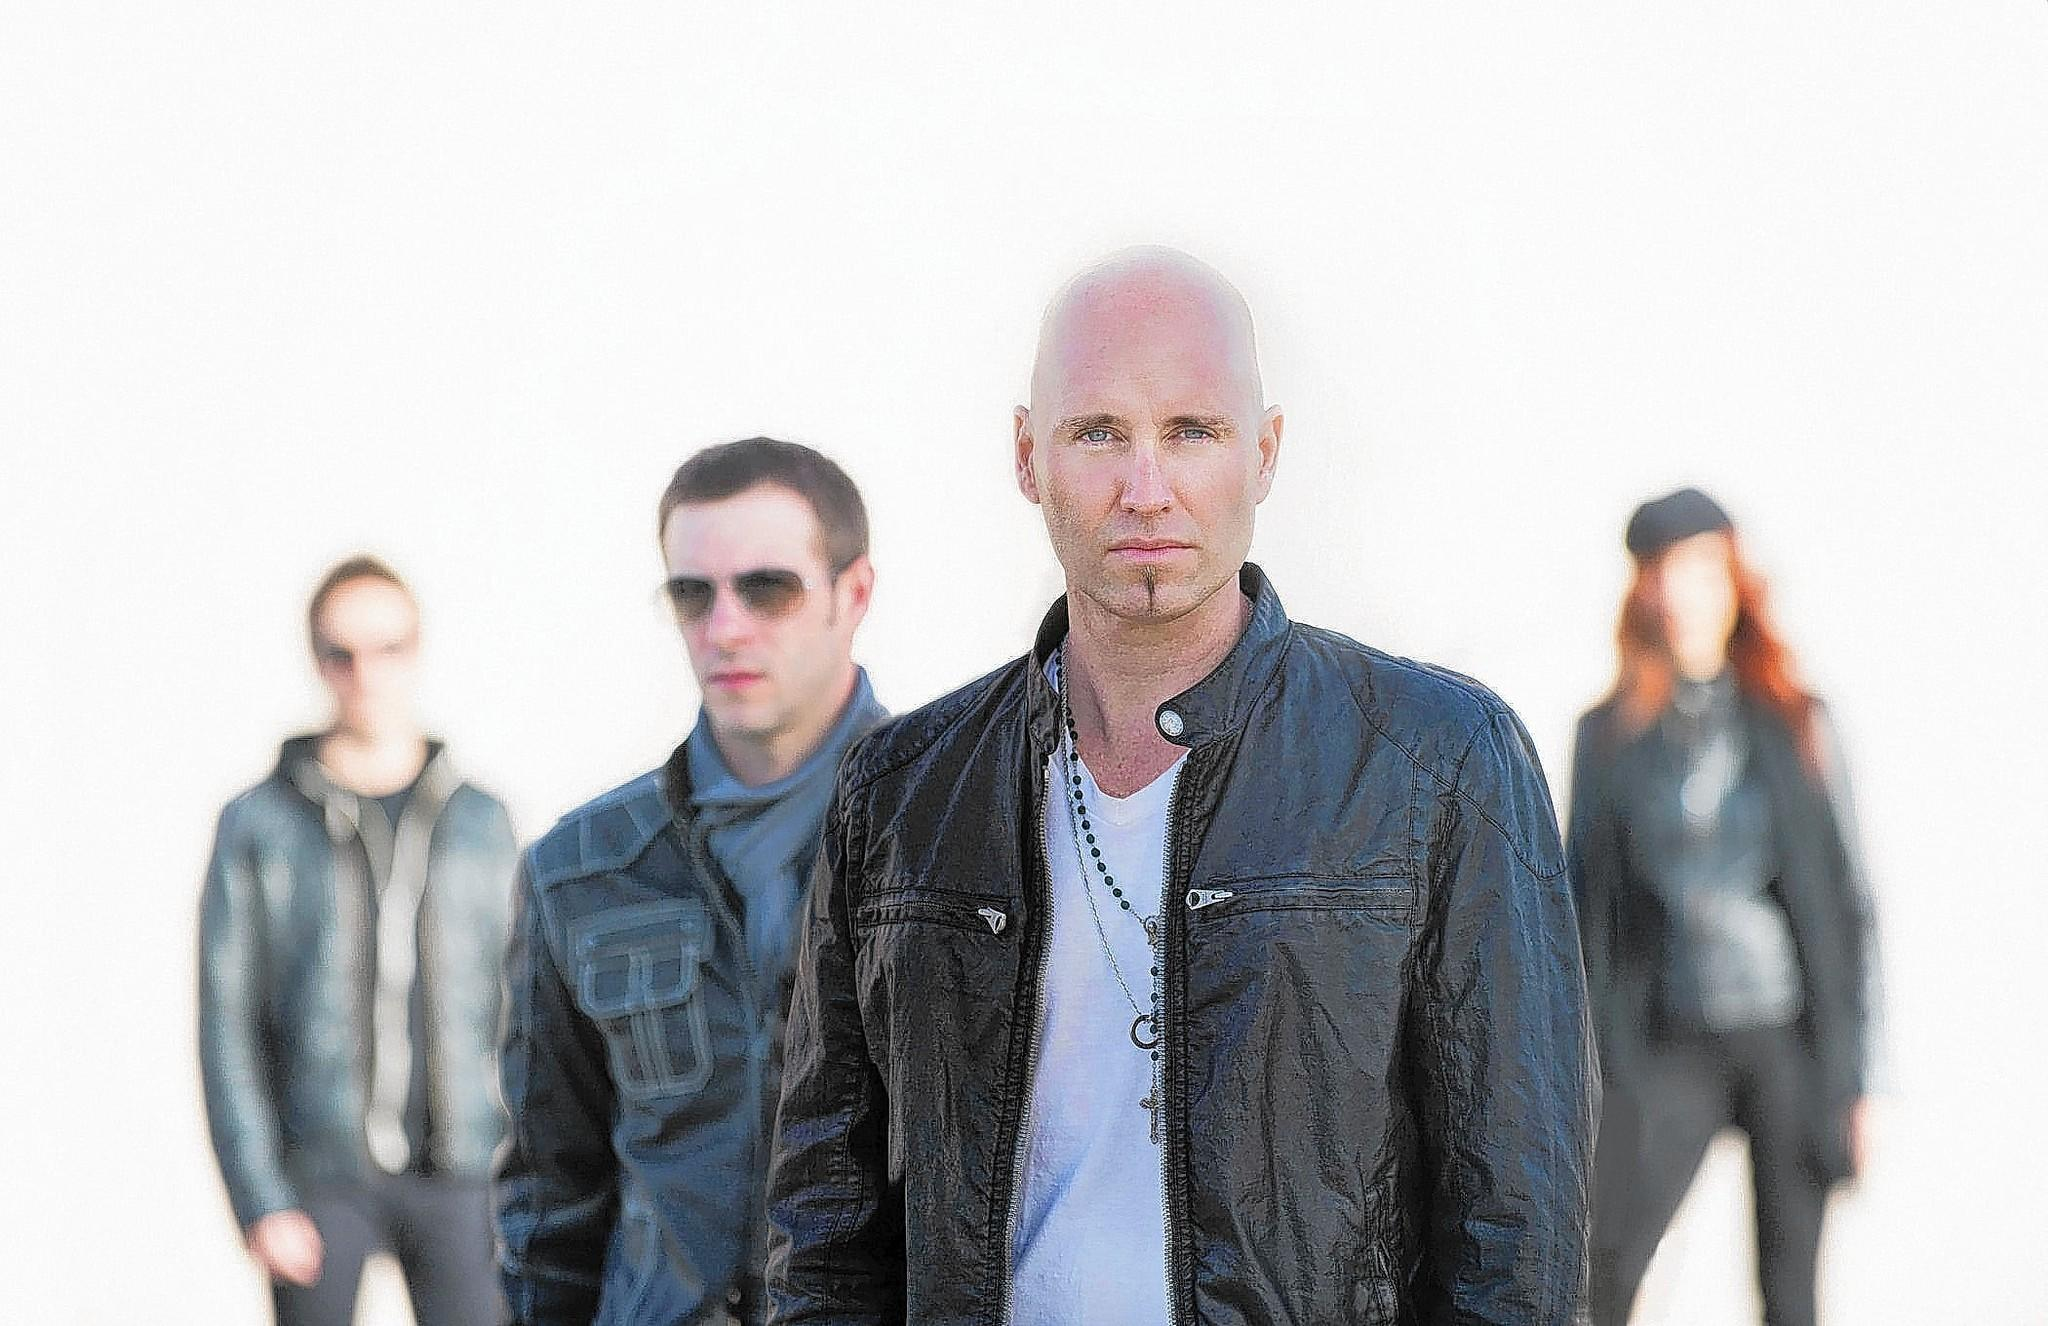 Rock band Vertical Horizon, led by Matt Scannell, plays Reading club Reverb on March 4.